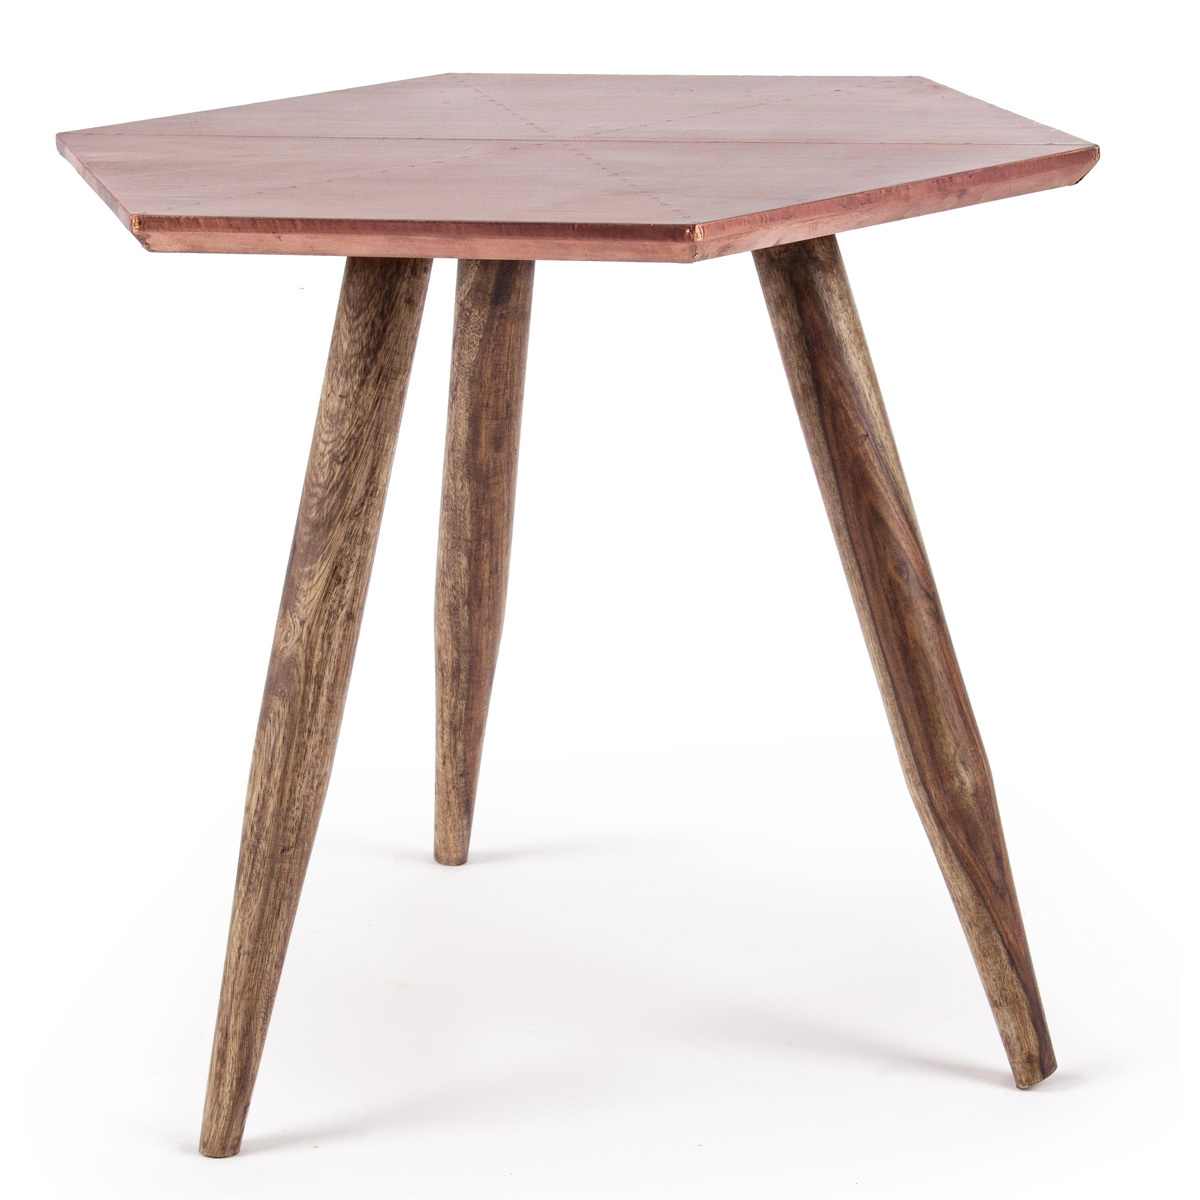 Photos 1: Bizzotto Wooden table with copper top 0745457